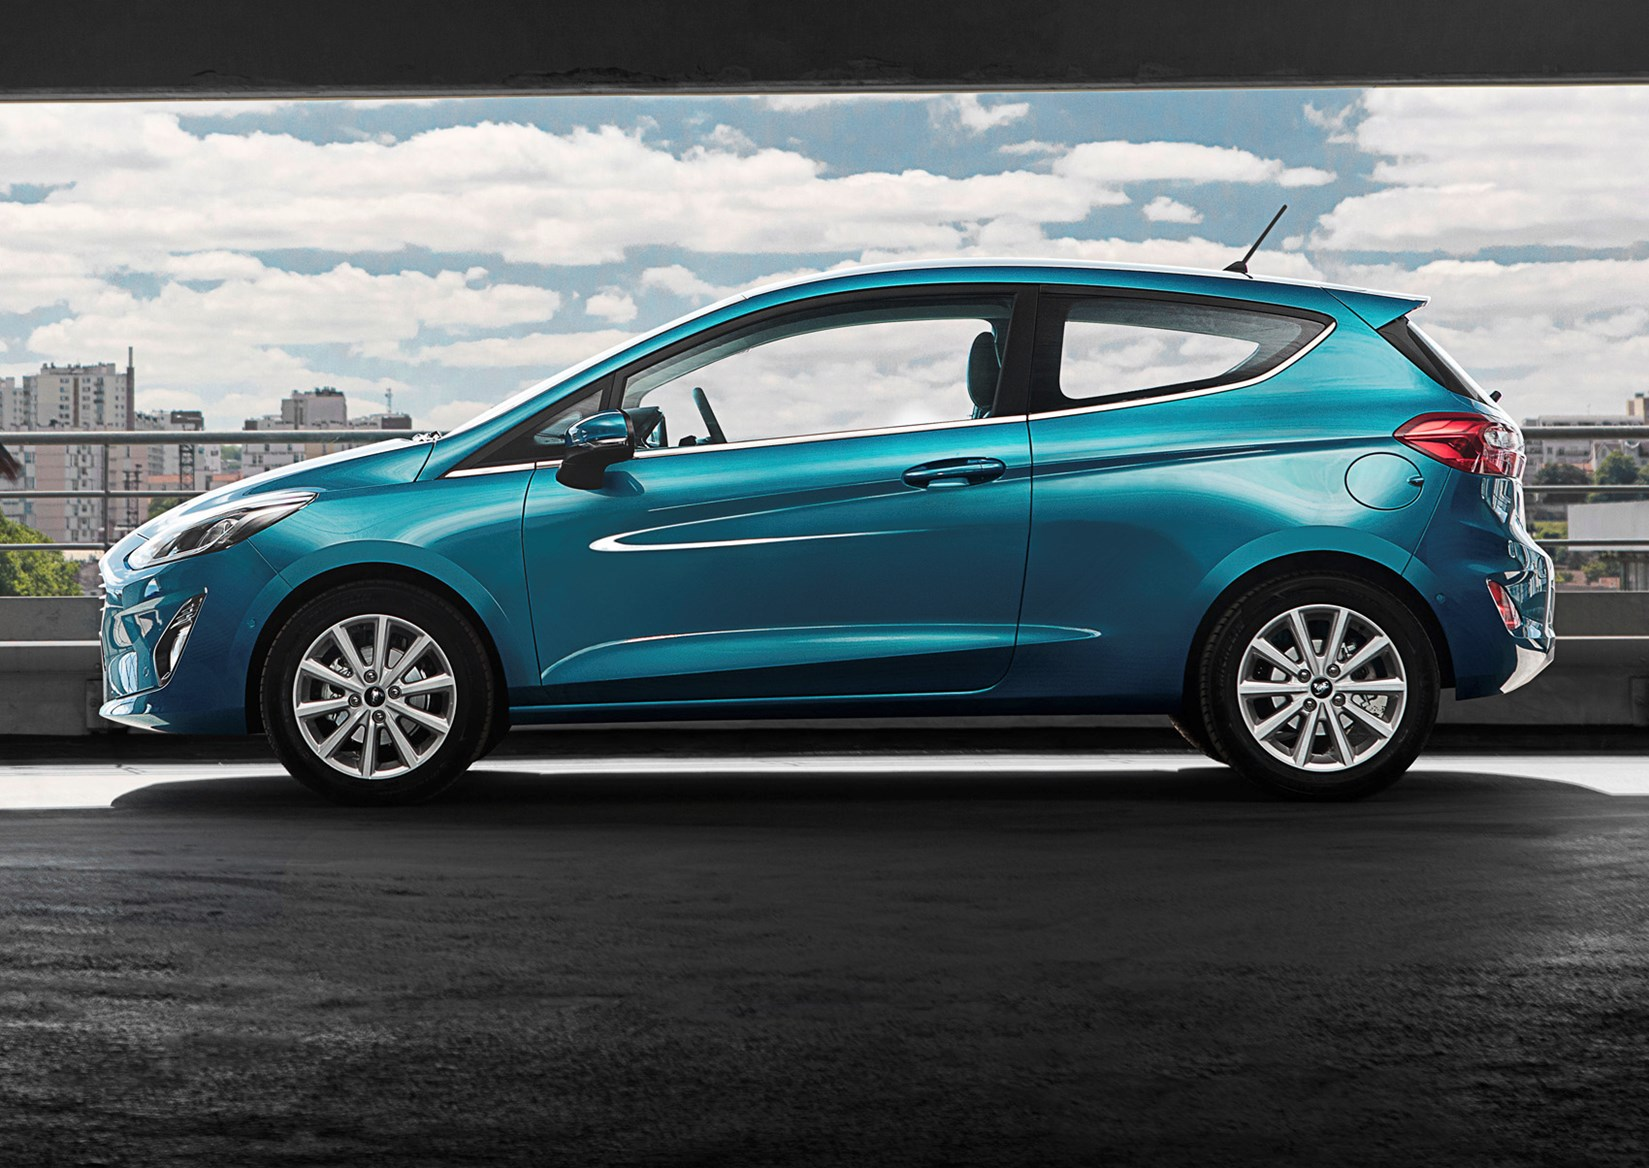 2017 ford fiesta review parkers. Black Bedroom Furniture Sets. Home Design Ideas